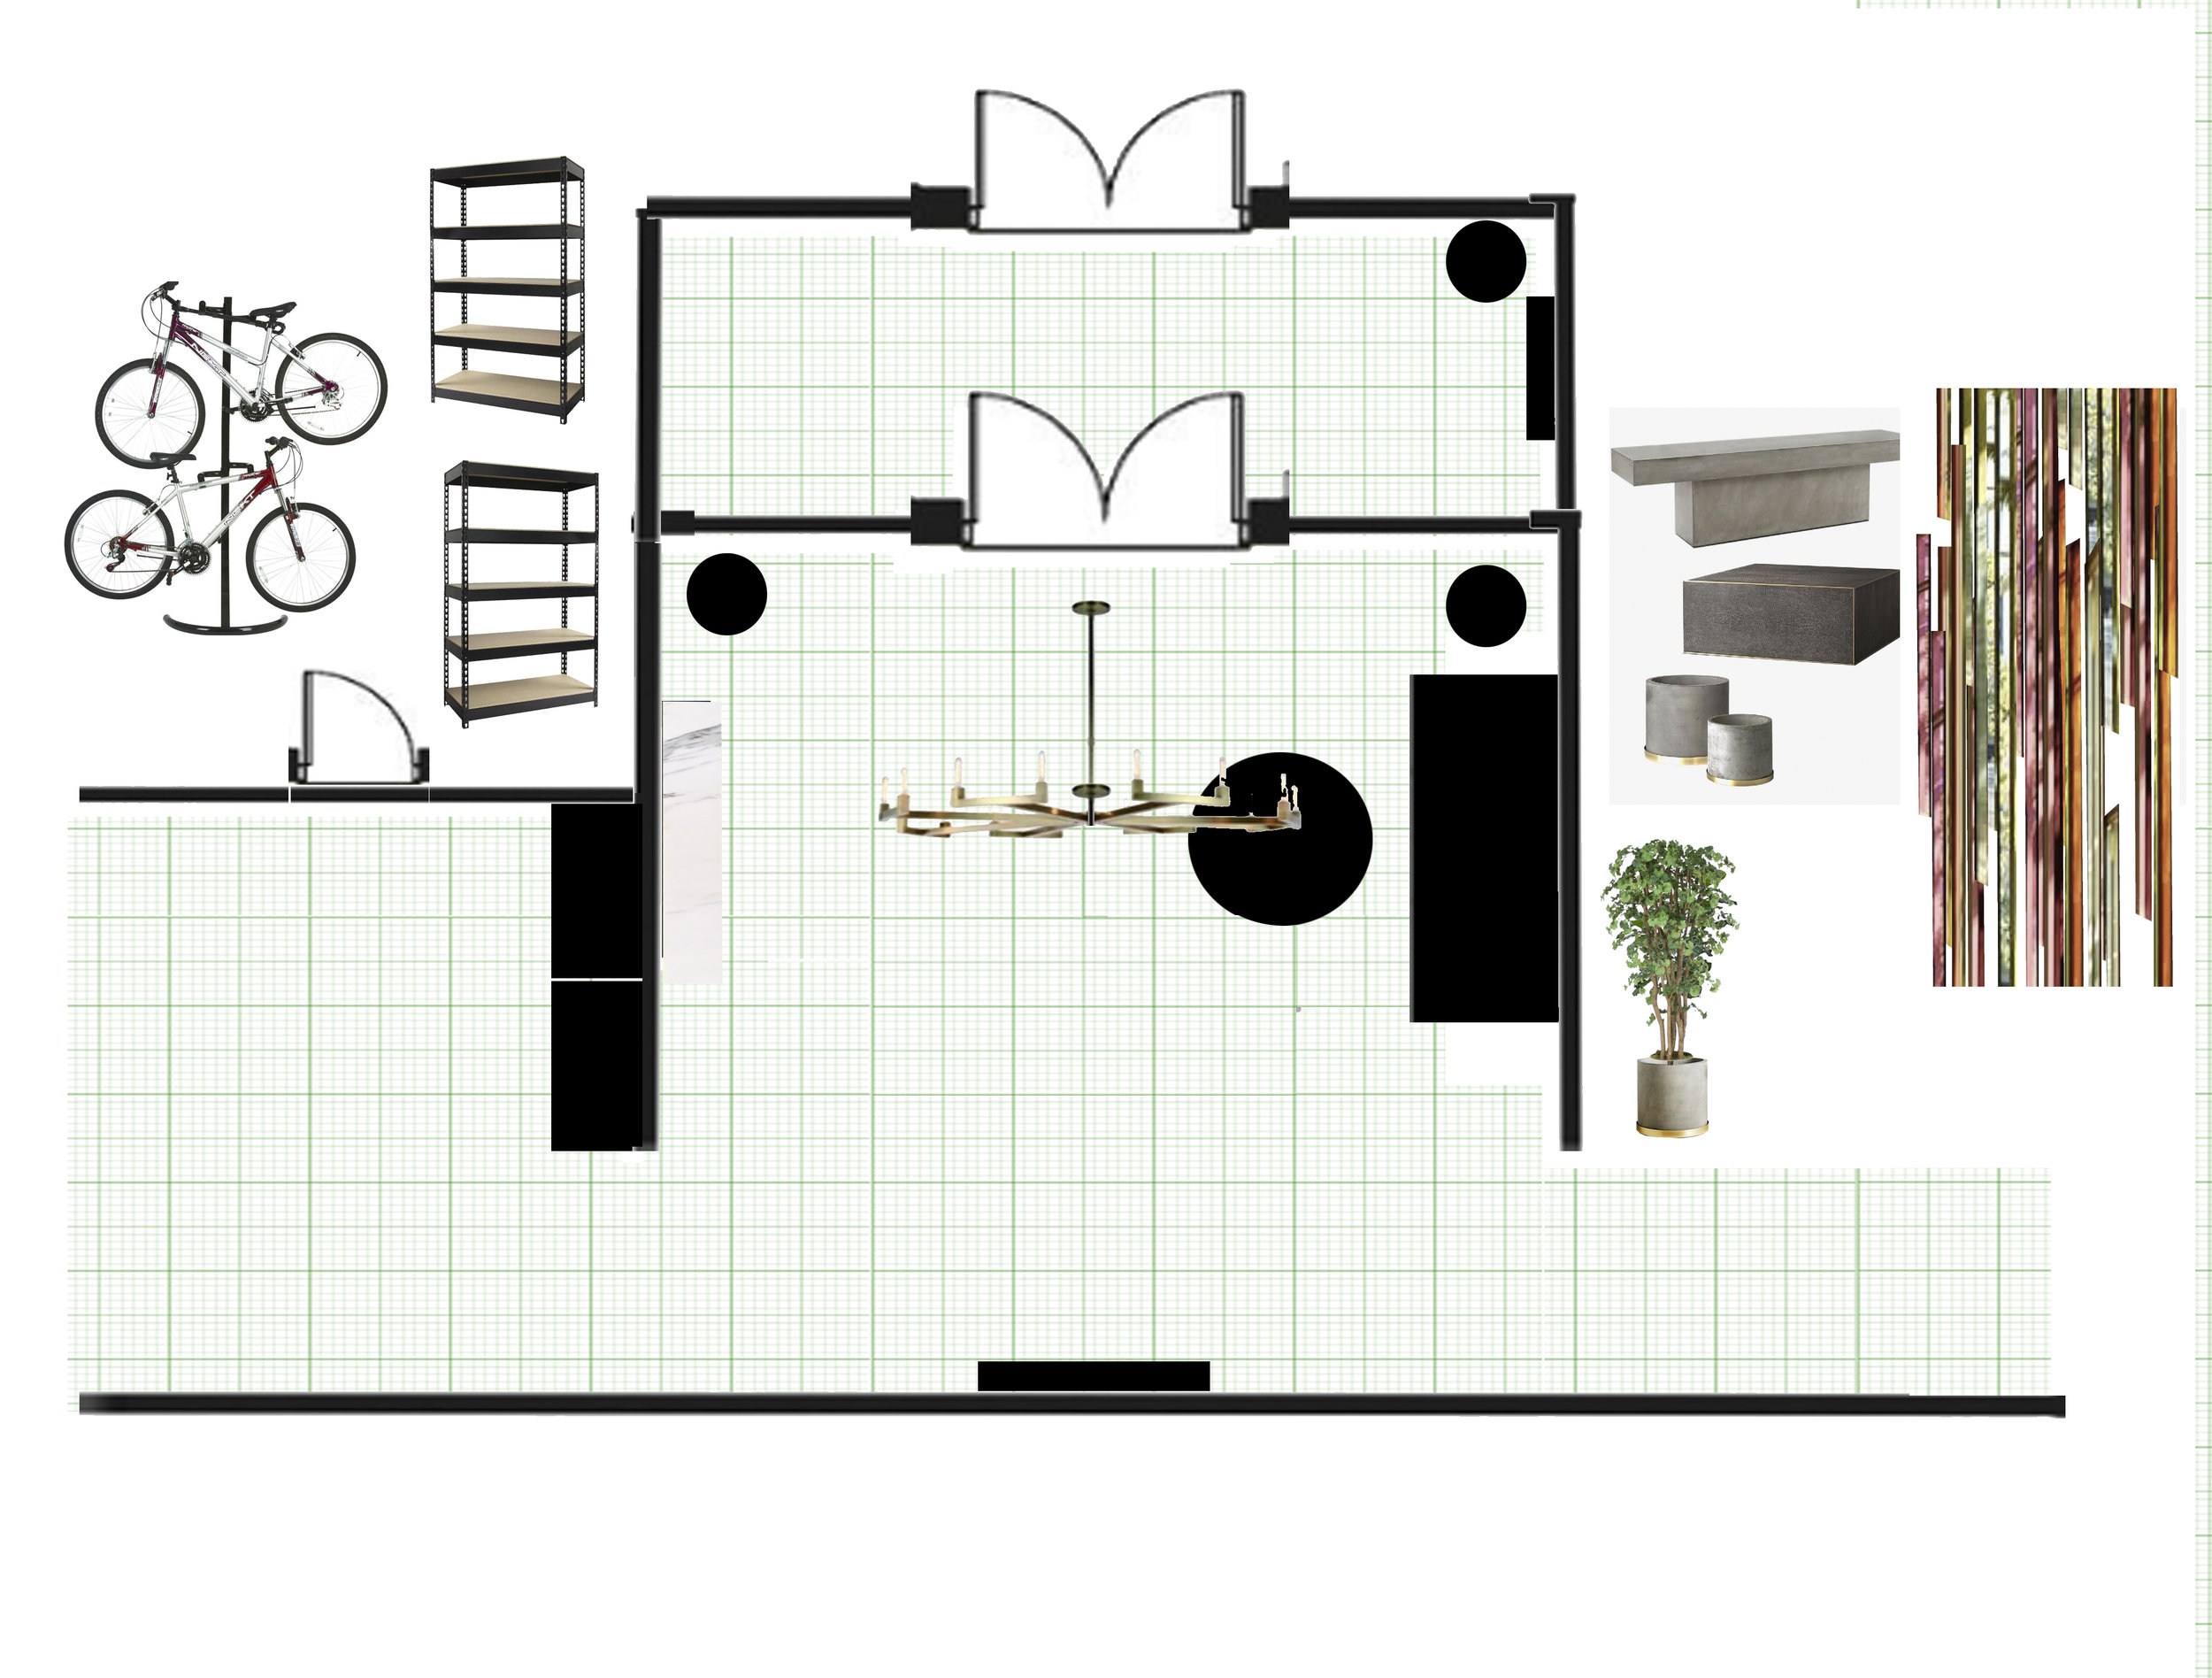 Floorplan+Lobby new.jpg